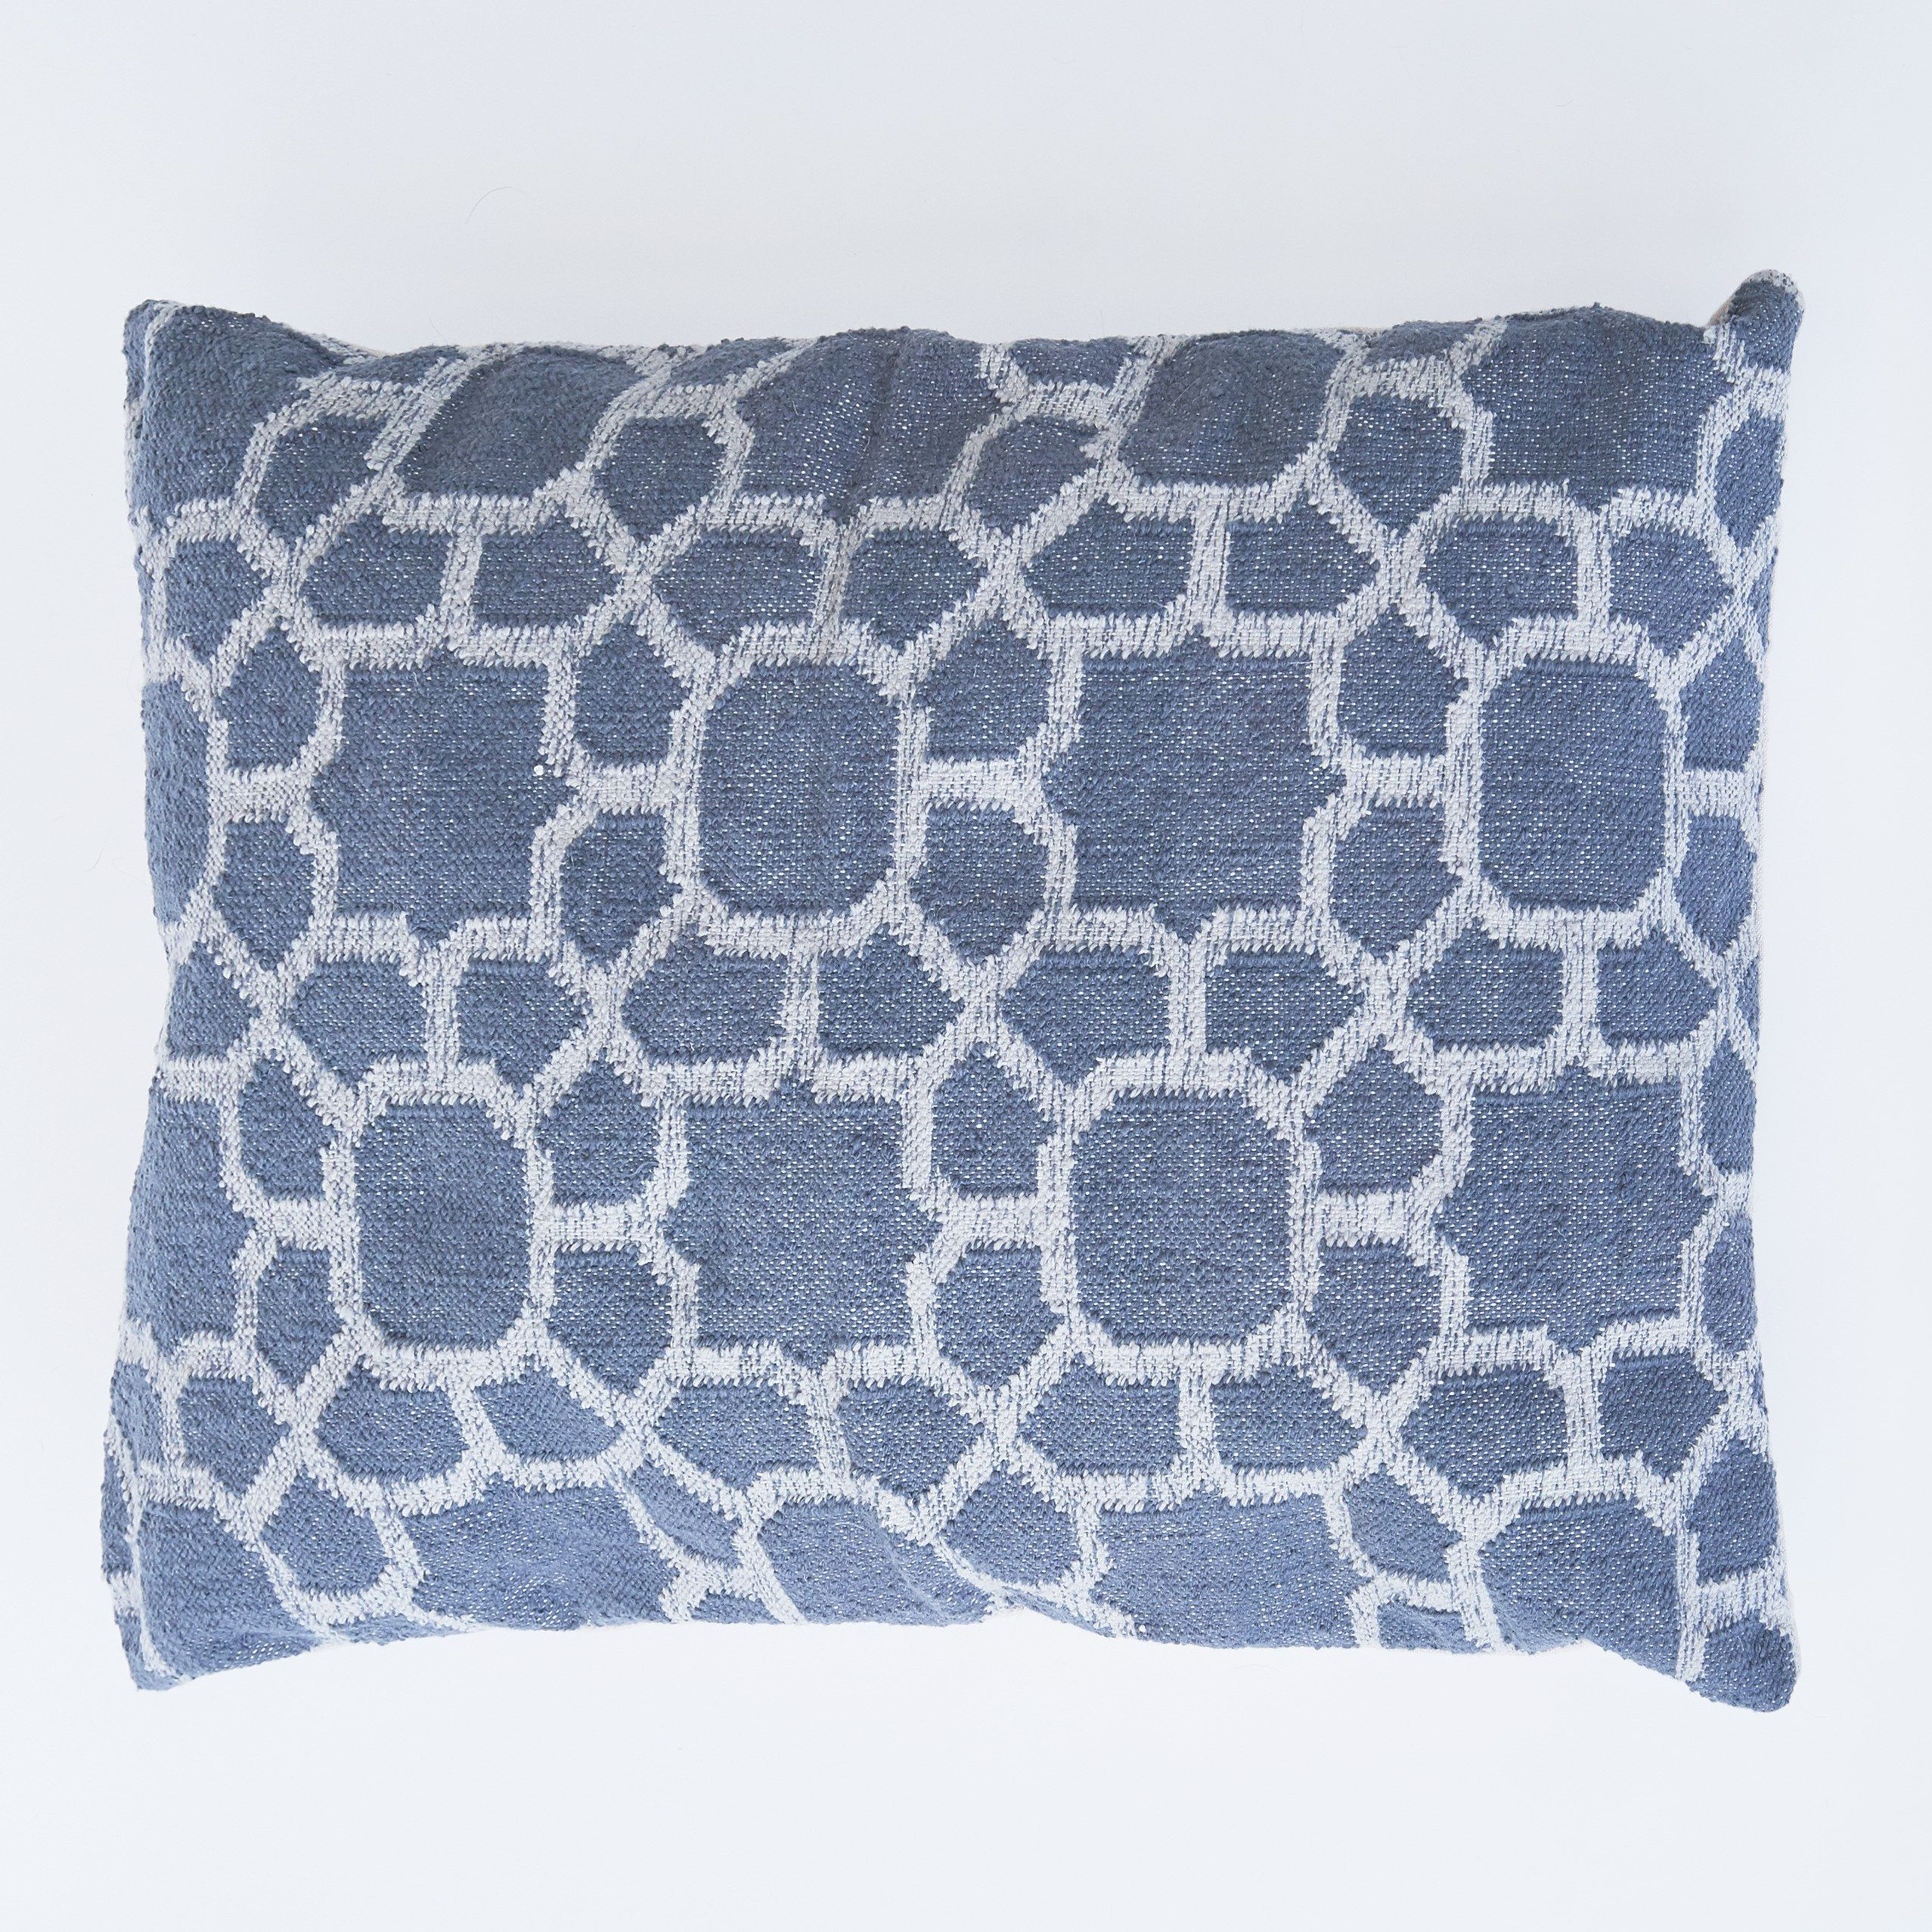 KASBAH | INK FLOOR CUSHION